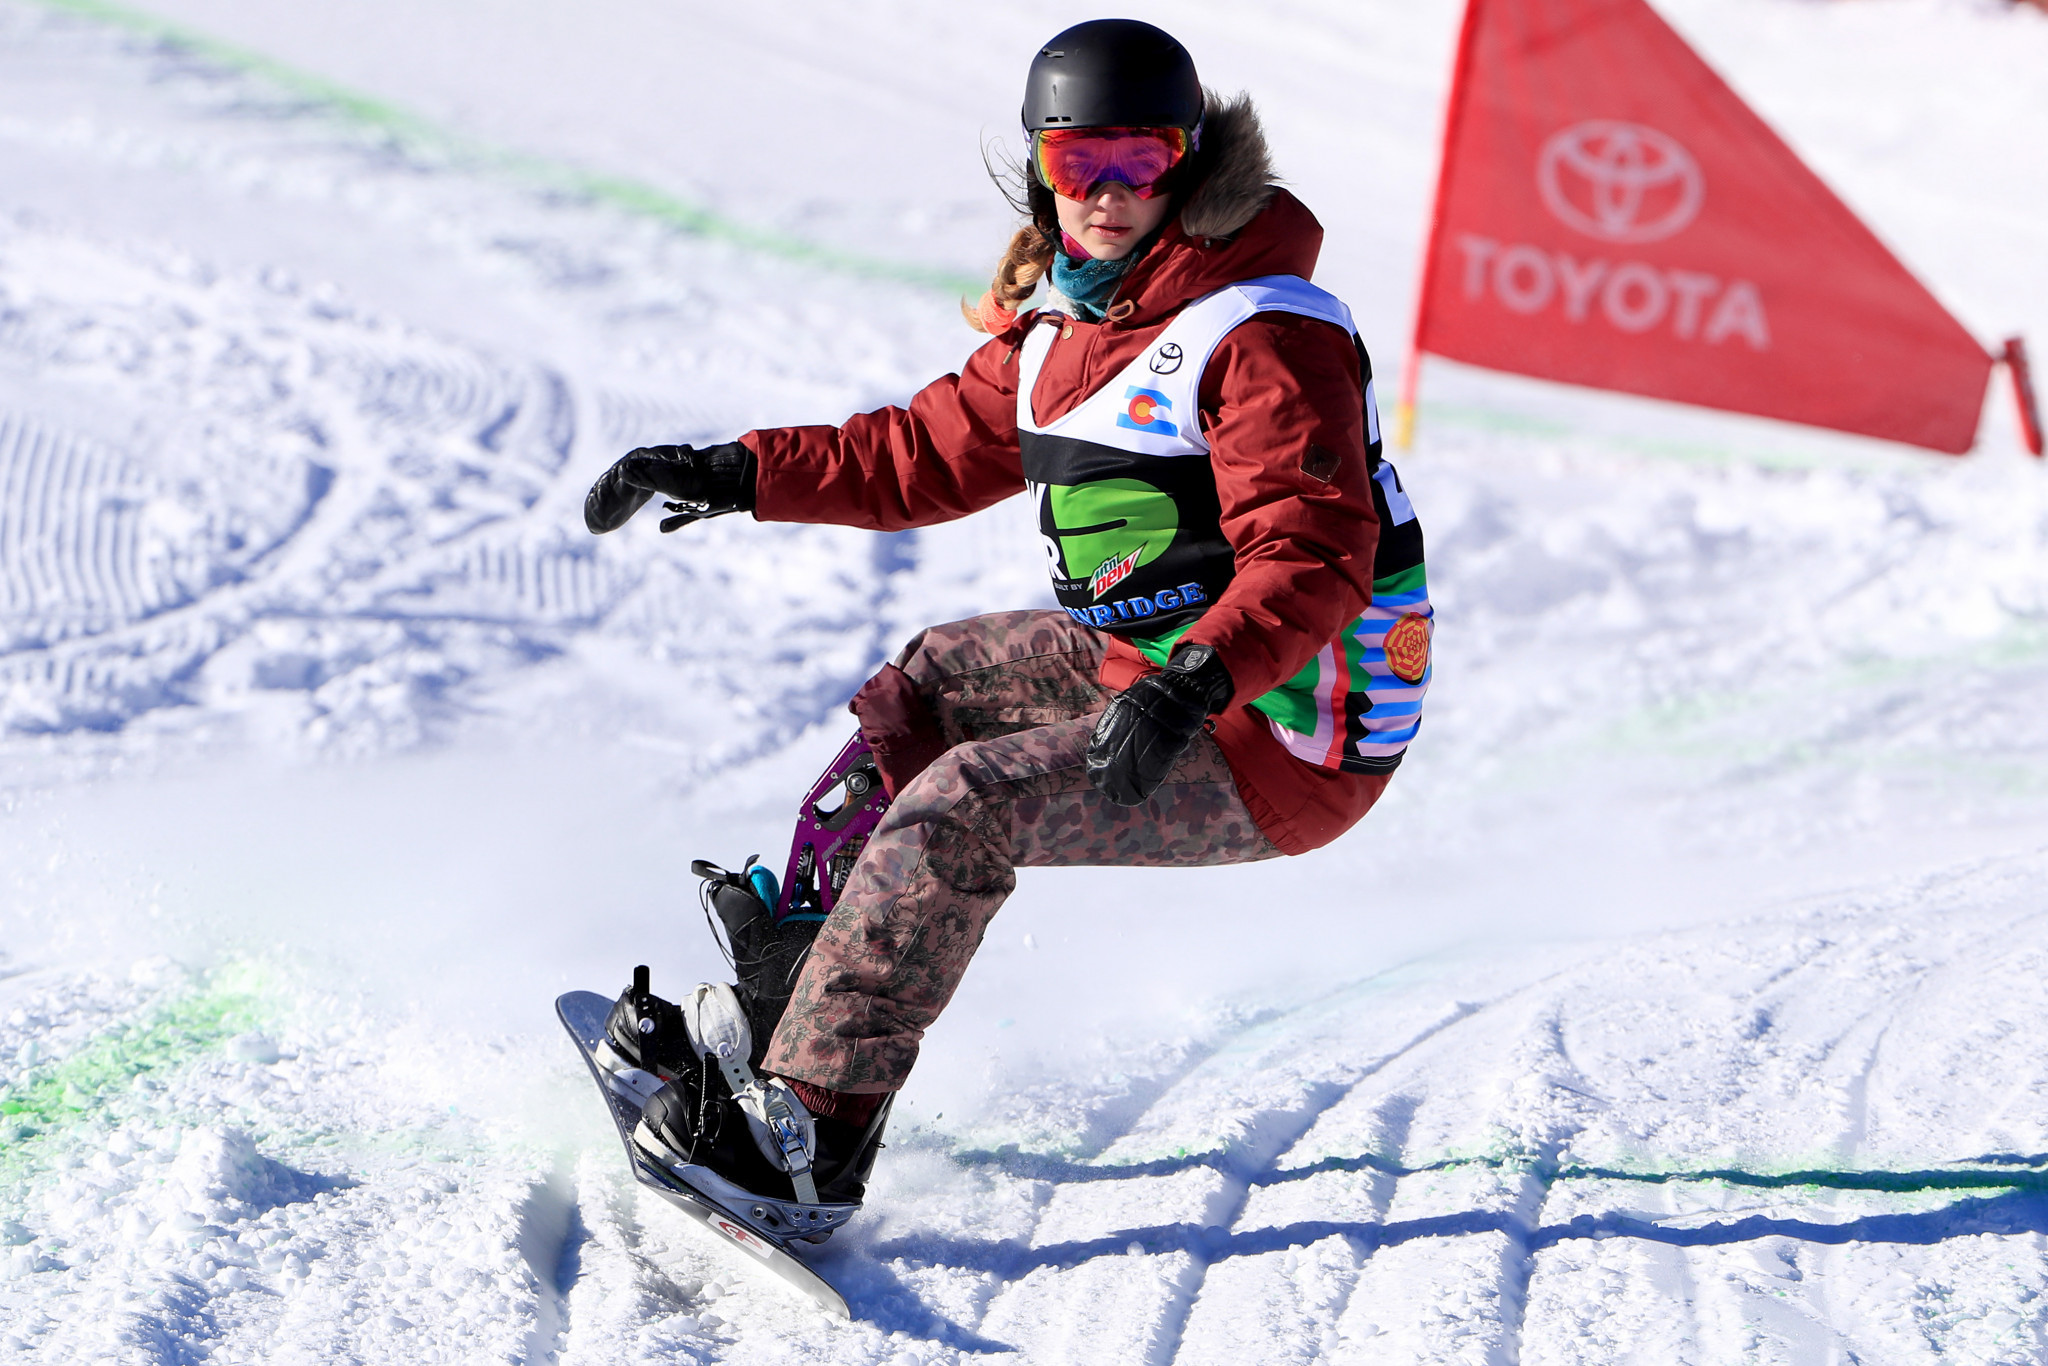 American Brenna Huckaby will be among the star names on show at the World Para Snowboard Championships in Pyha ©Getty Images